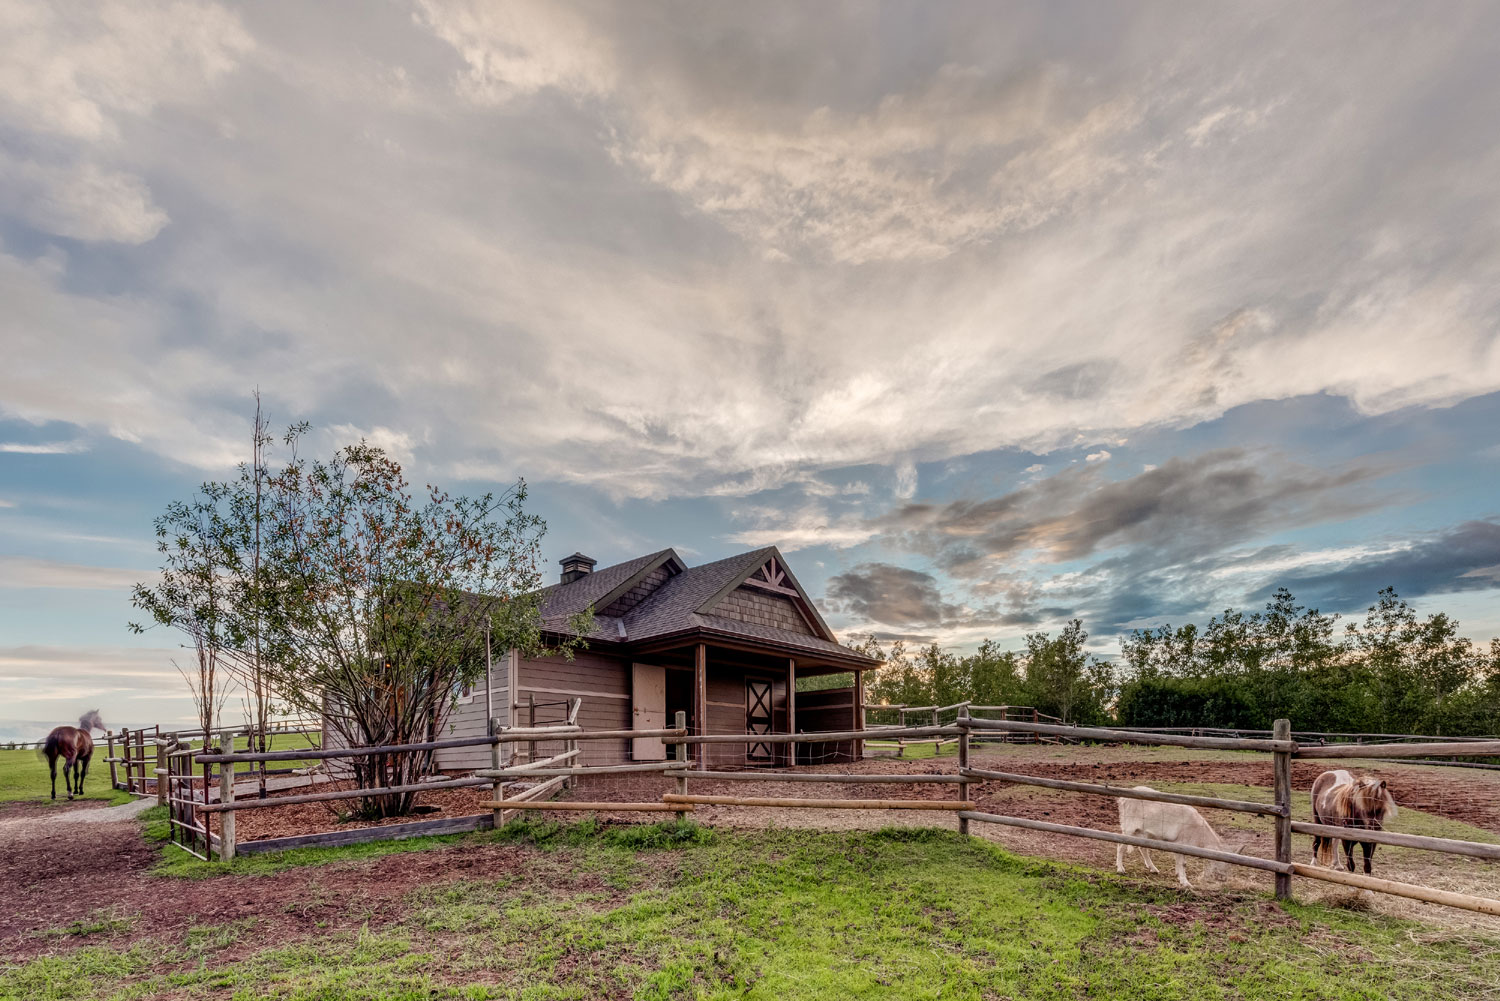 Ideal for both horse and hound, the 3.68-acre grounds include a fenced dog run, riding arena, modern equestrian barn, and post-and-rail fenced paddocks.